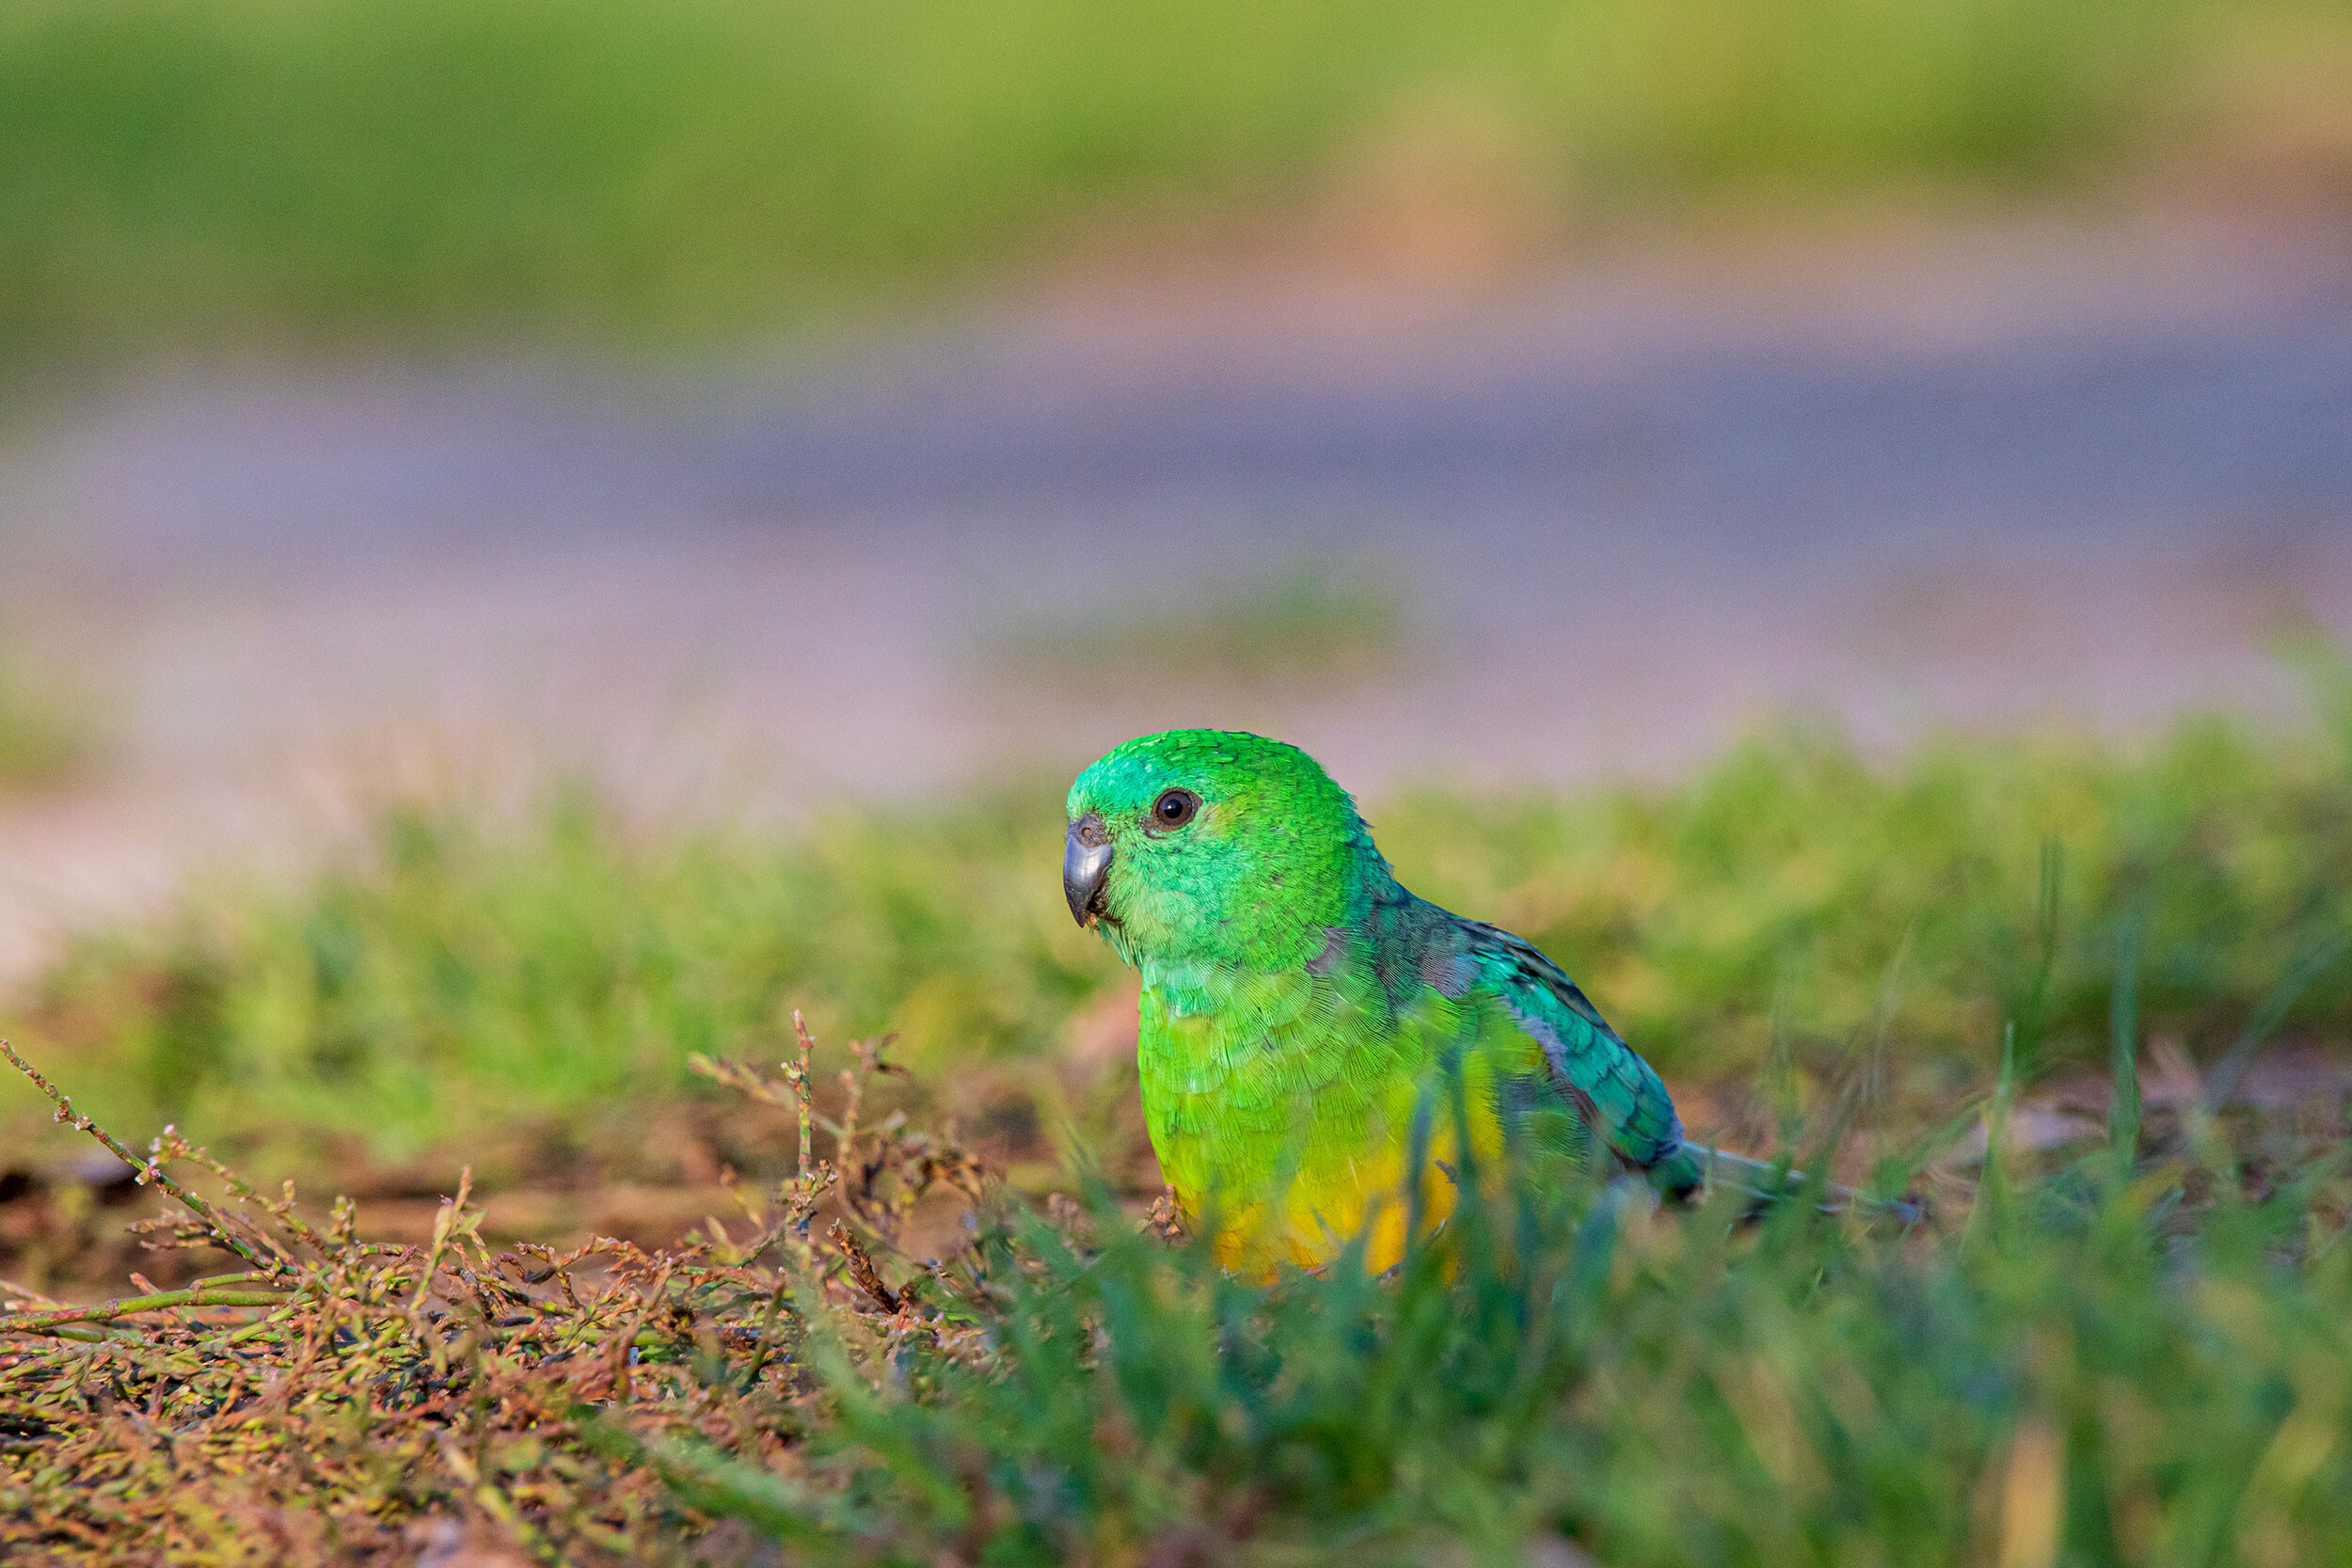 <i>Ryan Barnaby</i><br/>A red-rumped parrot